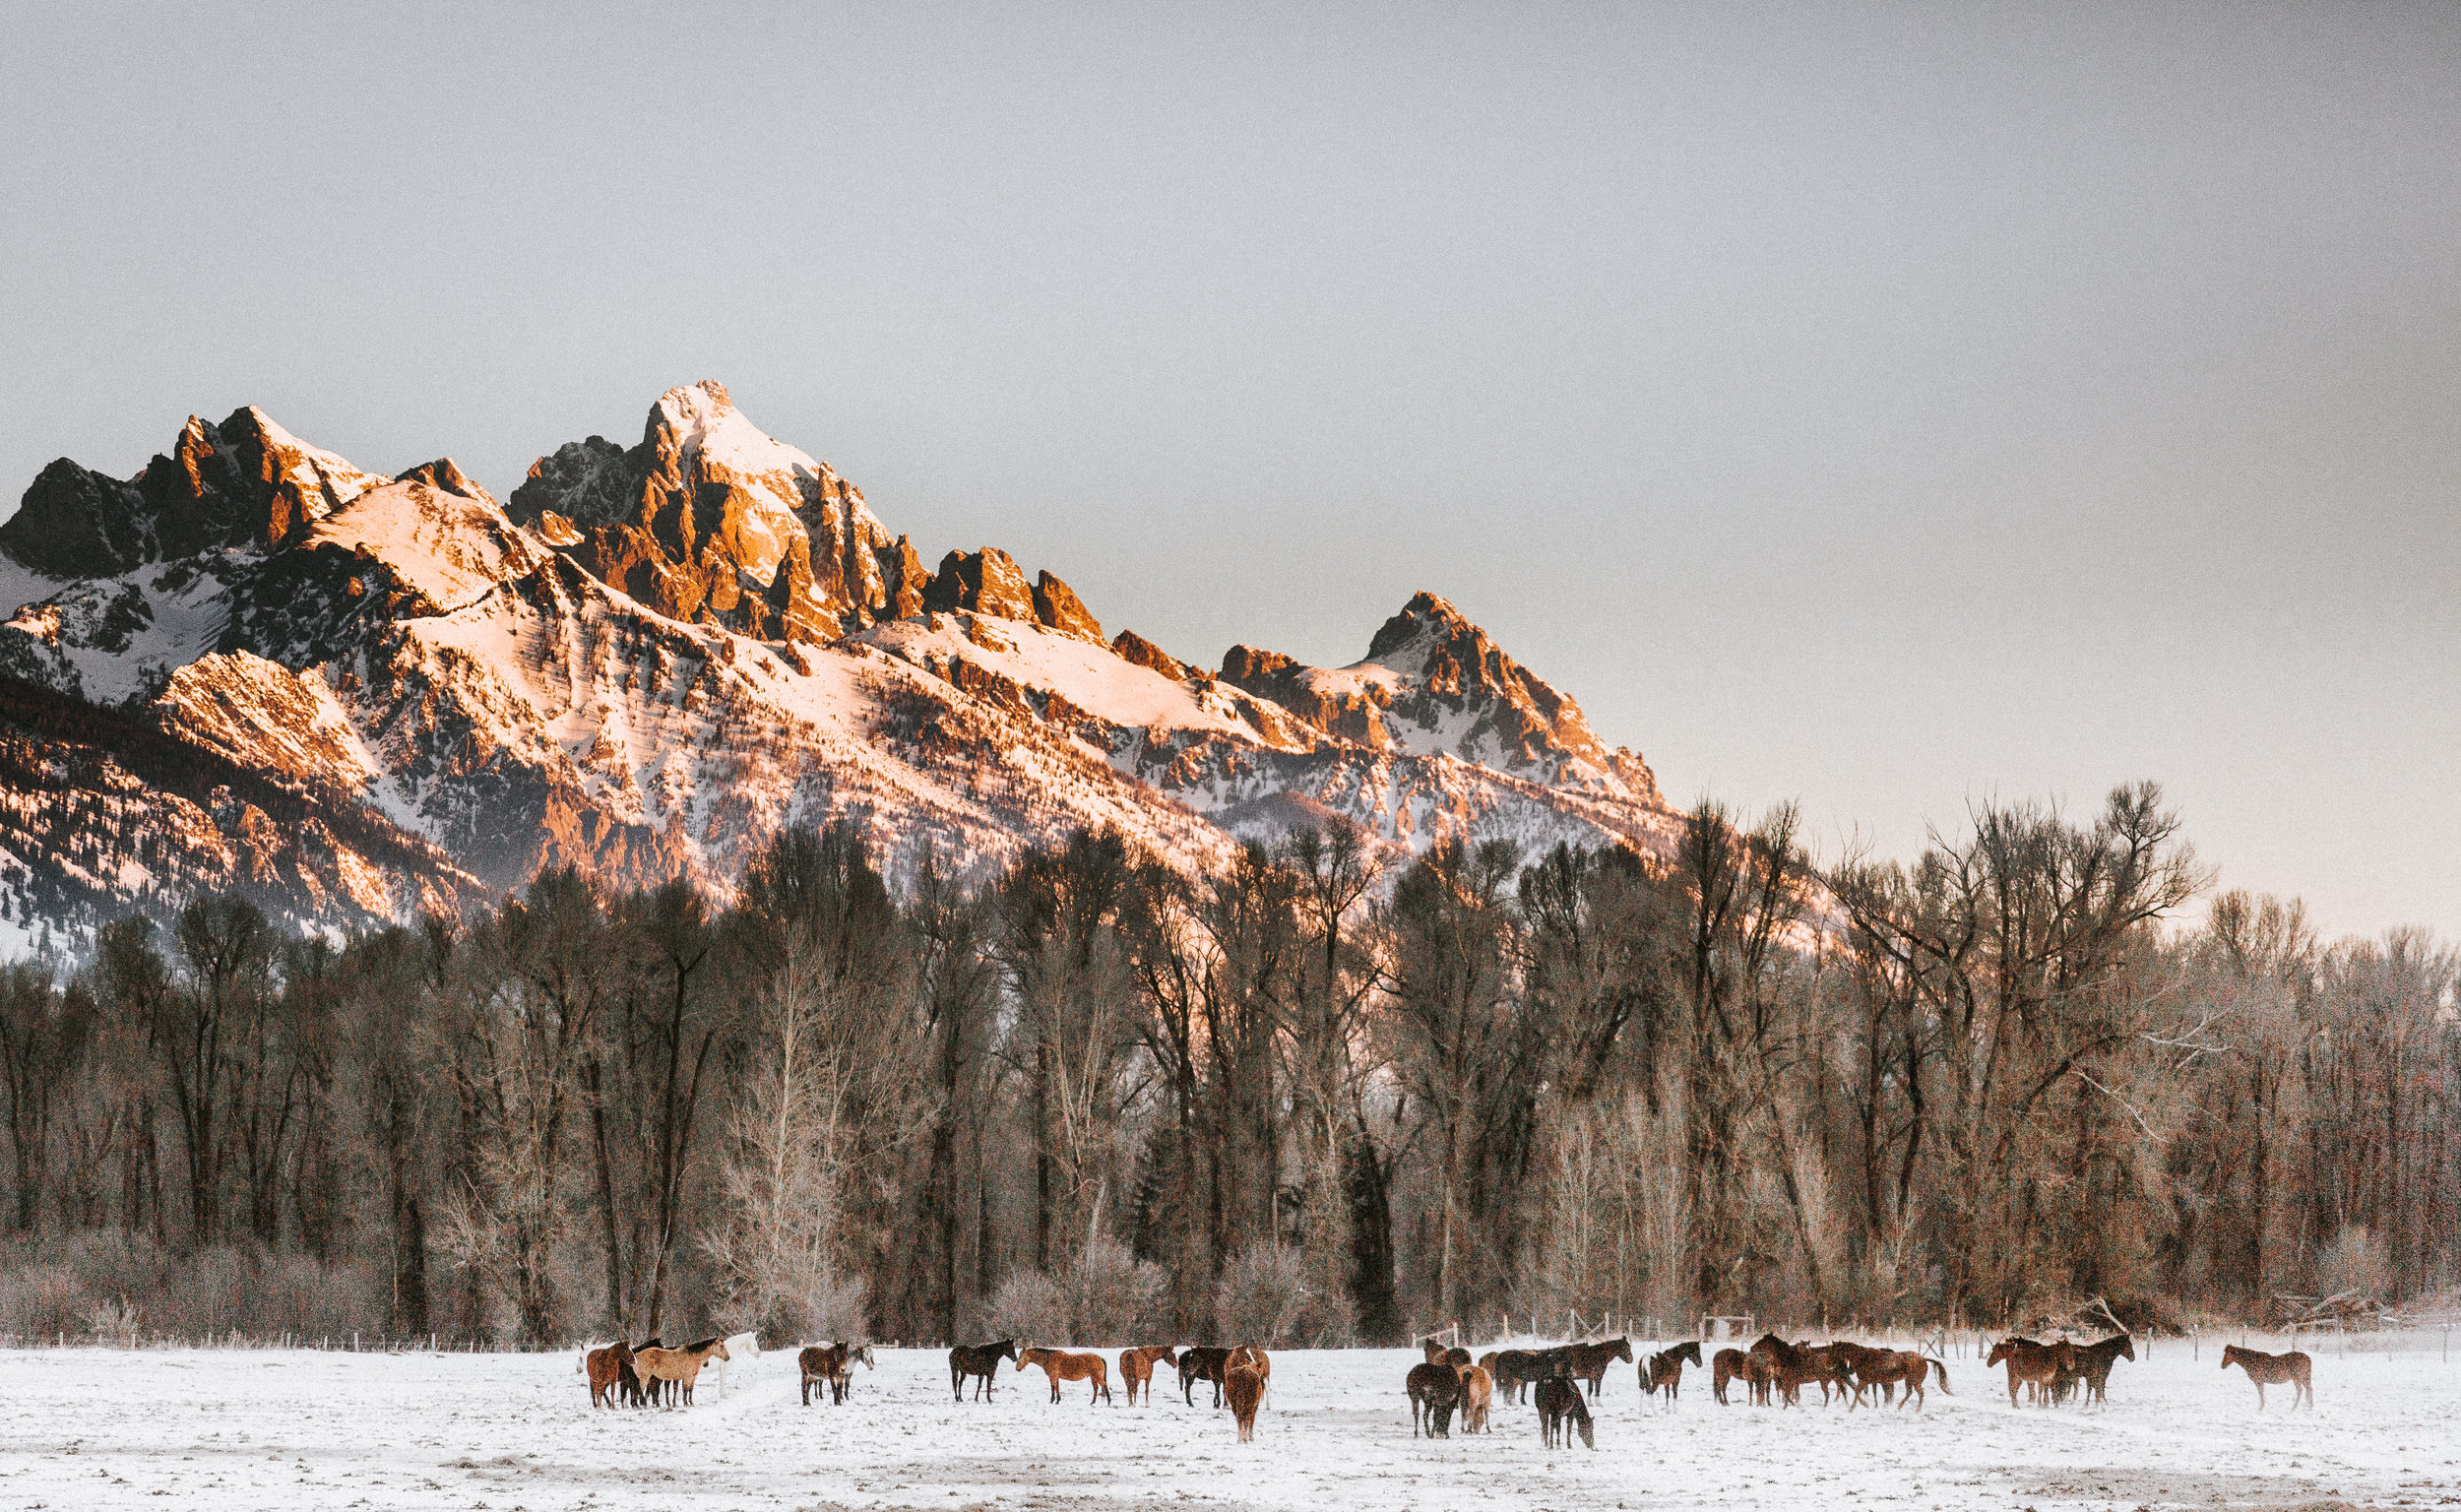 nicole-daacke-photography-jackson-hole-grand-teton-national-park-elopement-wedding-photographer-adventurous-engagement-session-grand-tetons-snow-visit-itinerary-for-jackson-hole-wyoming-9670.jpg